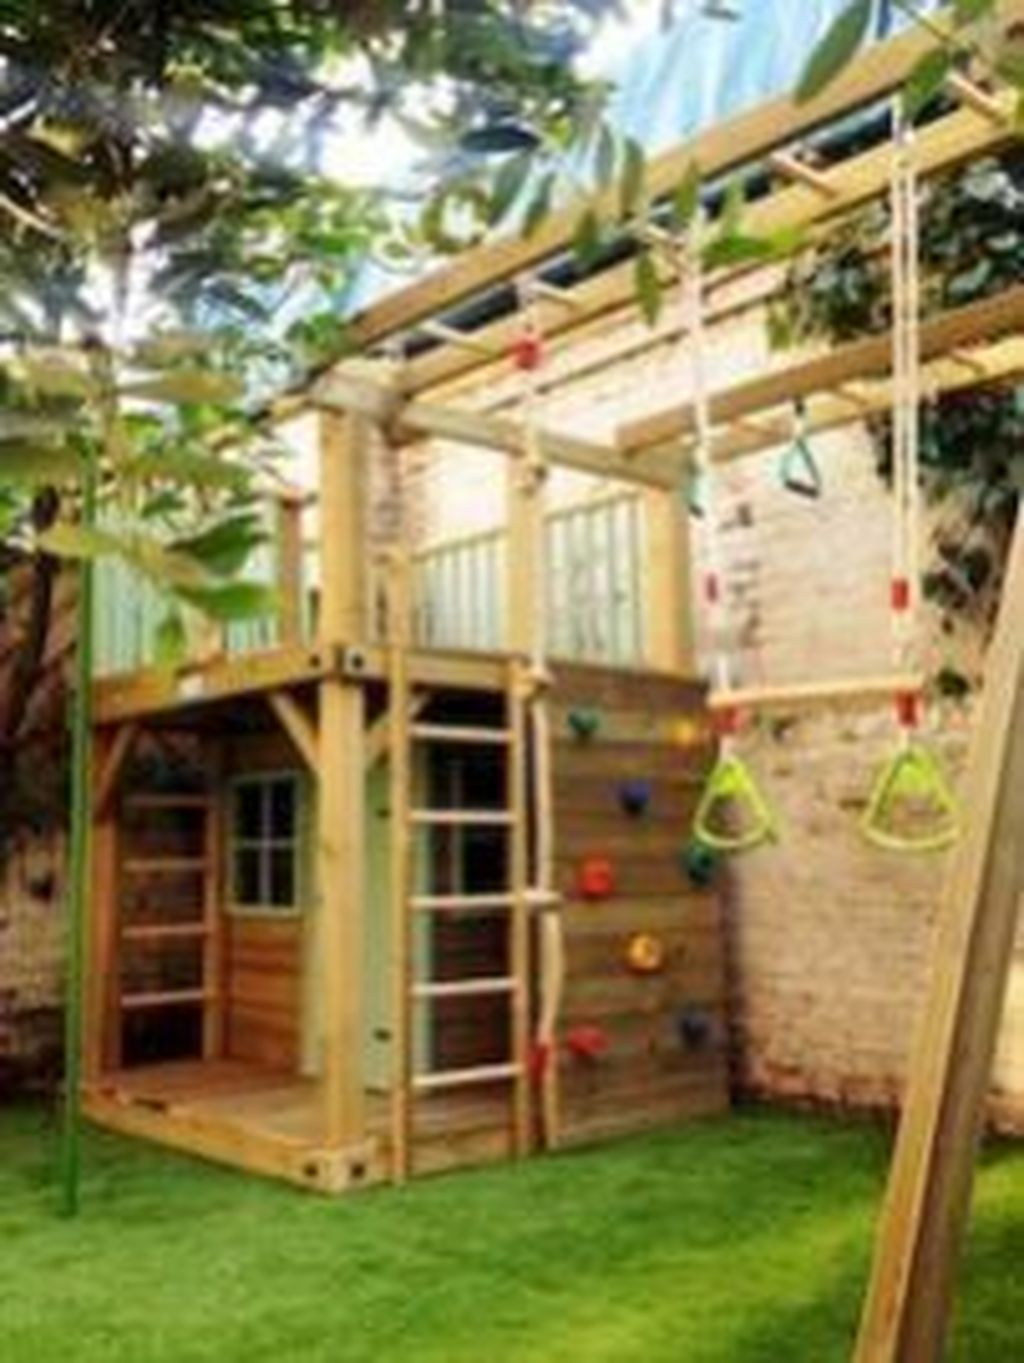 Incredible Magical Backyard Design Ideas For Your Kids 01